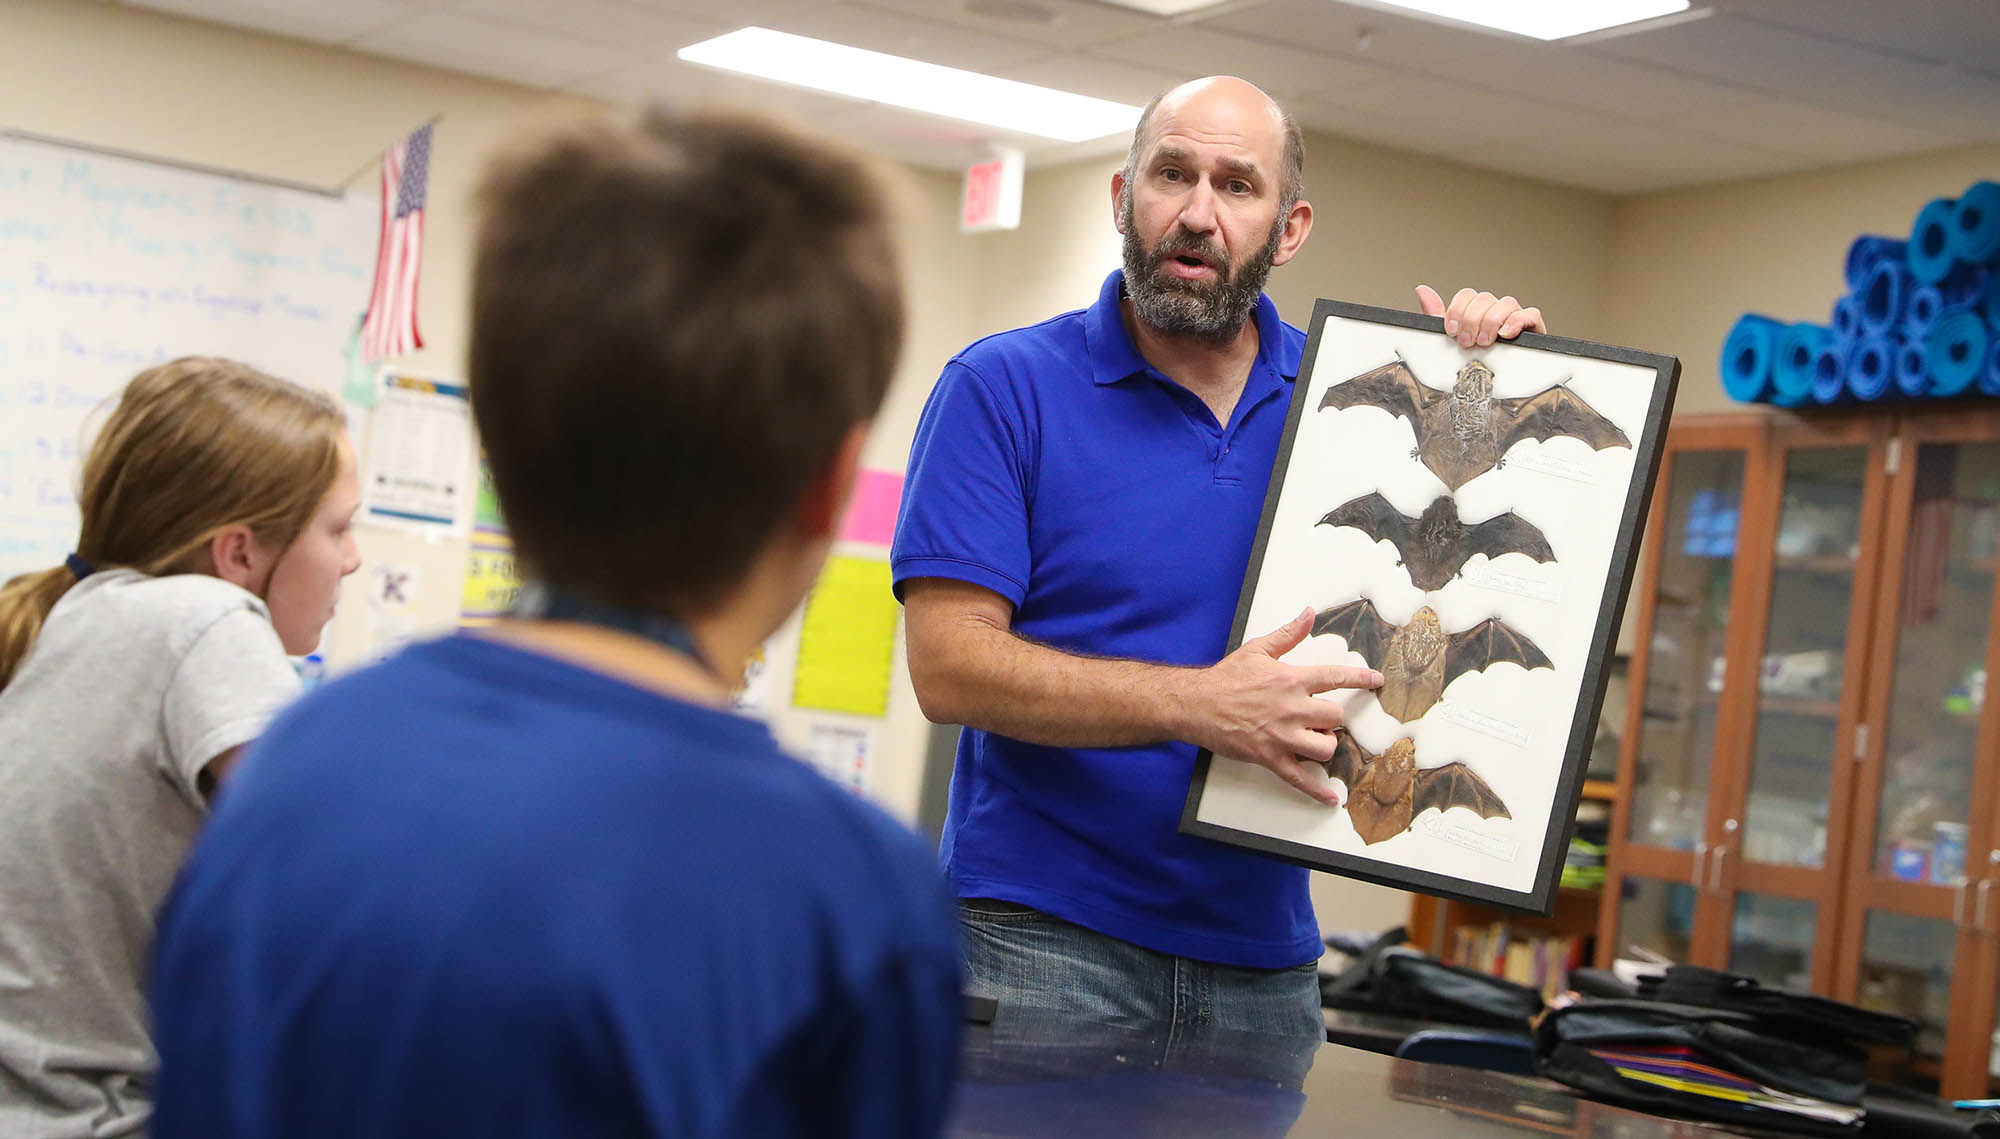 UNK biology professor Keith Geluso talks about different bat species during an Oct. 24 presentation at Horizon Middle School in Kearney. Geluso uses the presentations to educate students about bats, promote the animal's benefits and, hopefully, ease any fears.